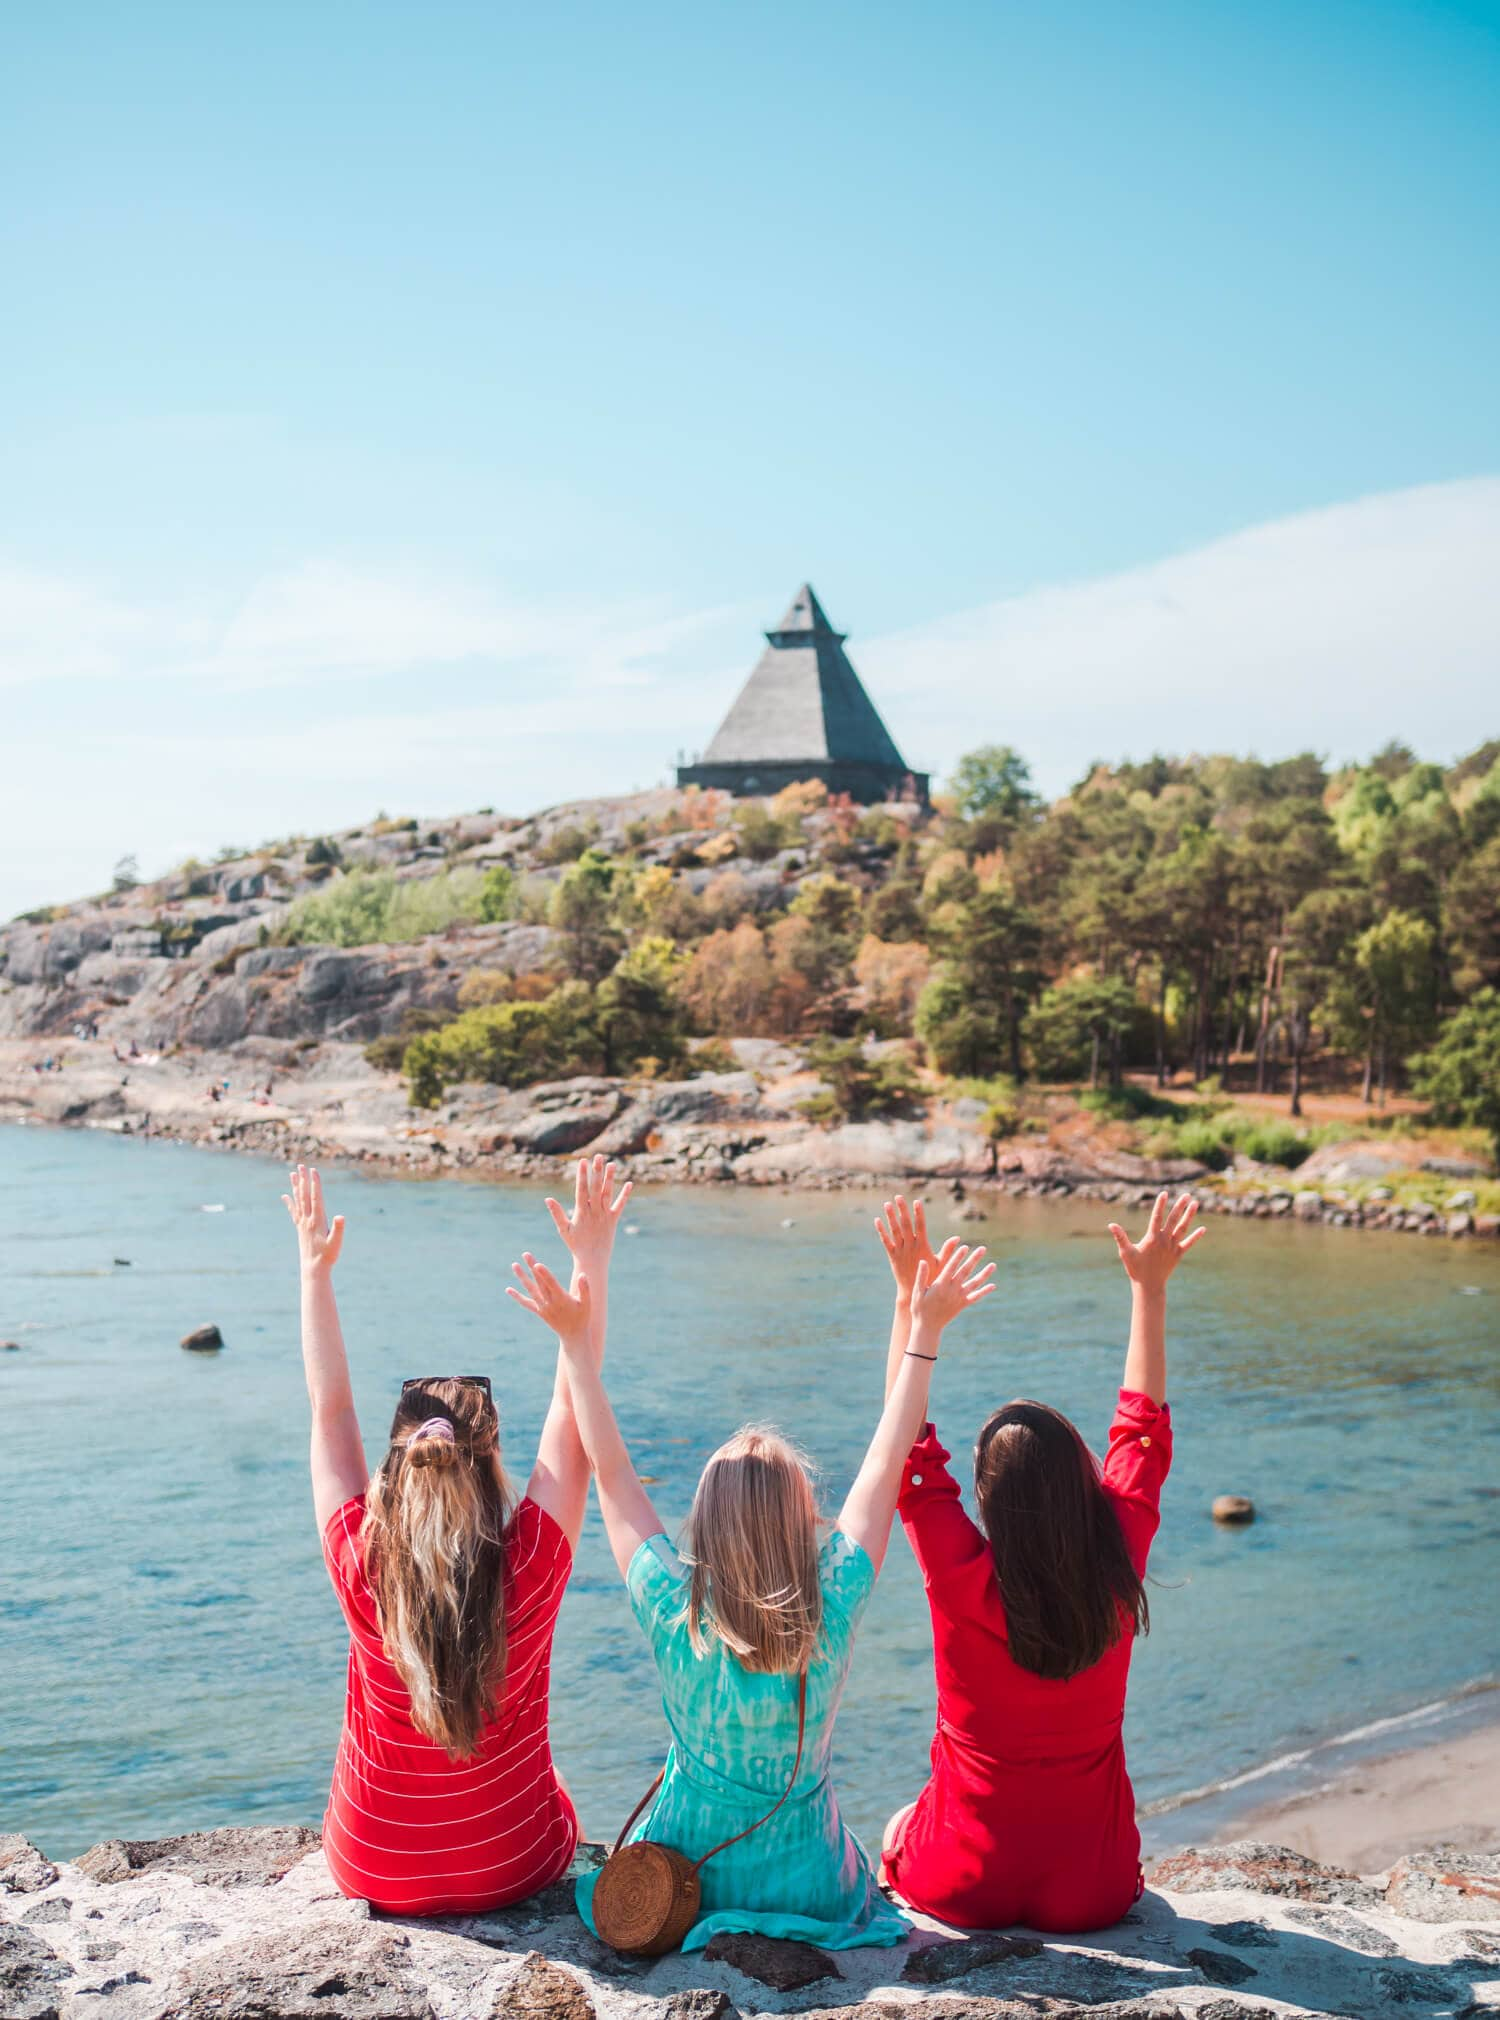 Feeling happy with my two sisters in one of Norway's most beautiful summer cities, Stavern